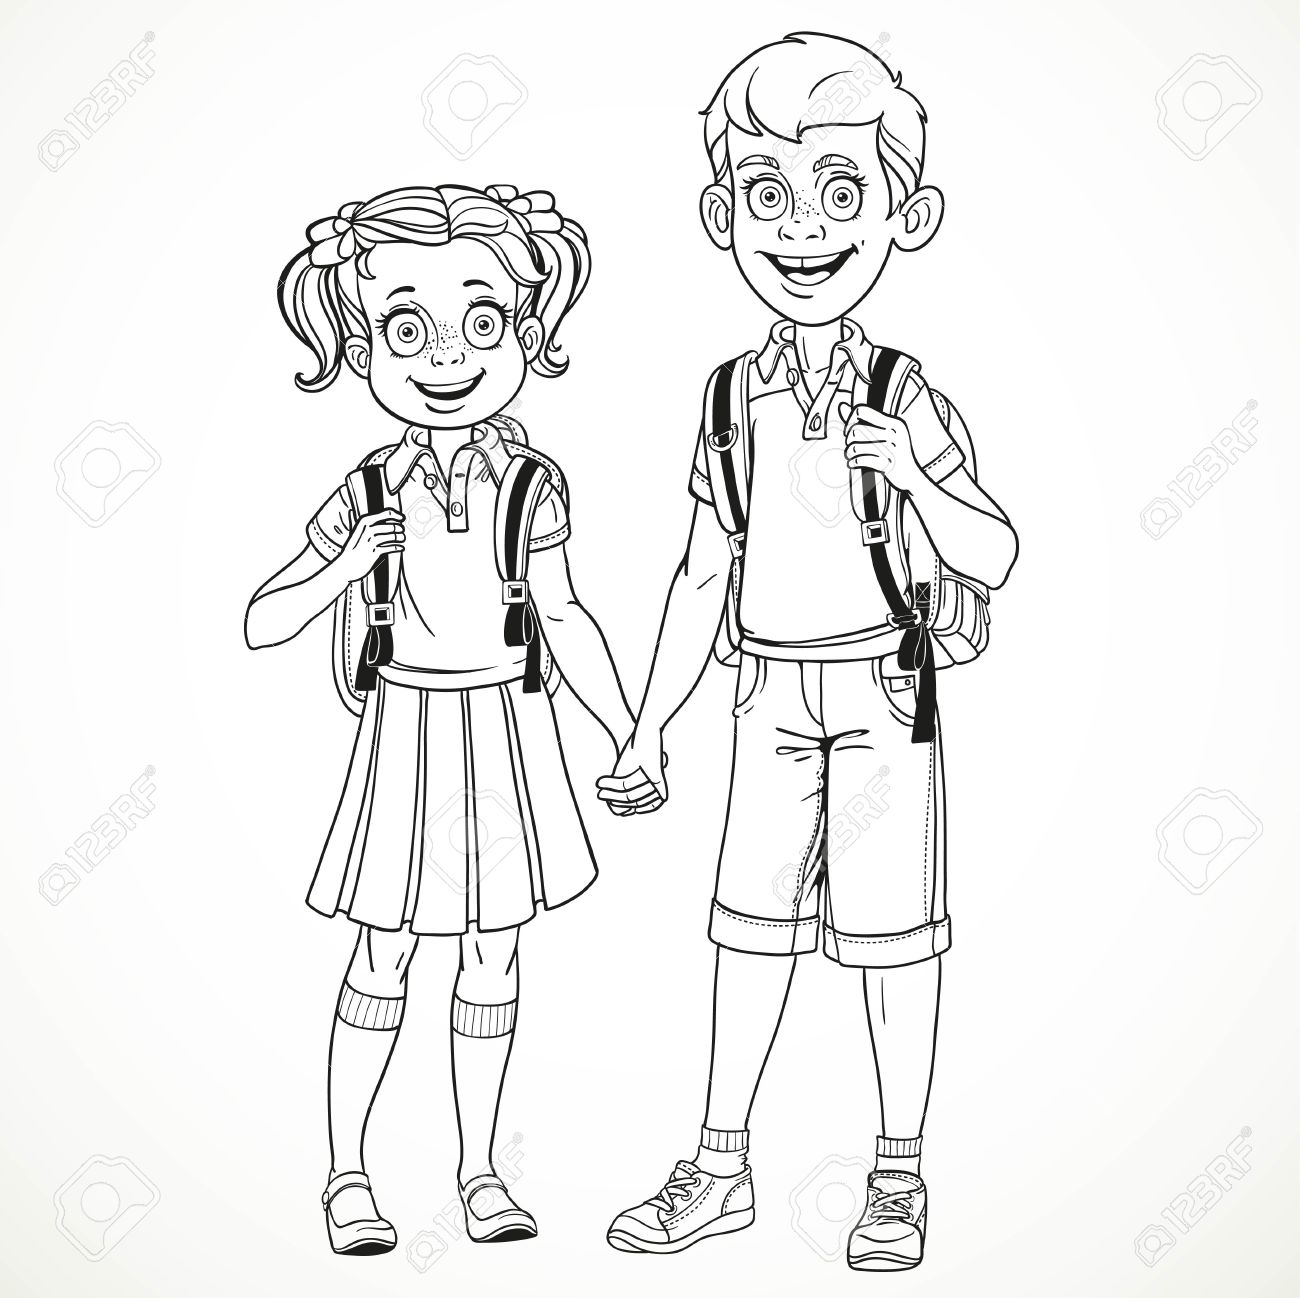 Boy and girl with a school bag holding hands line drawing isolated